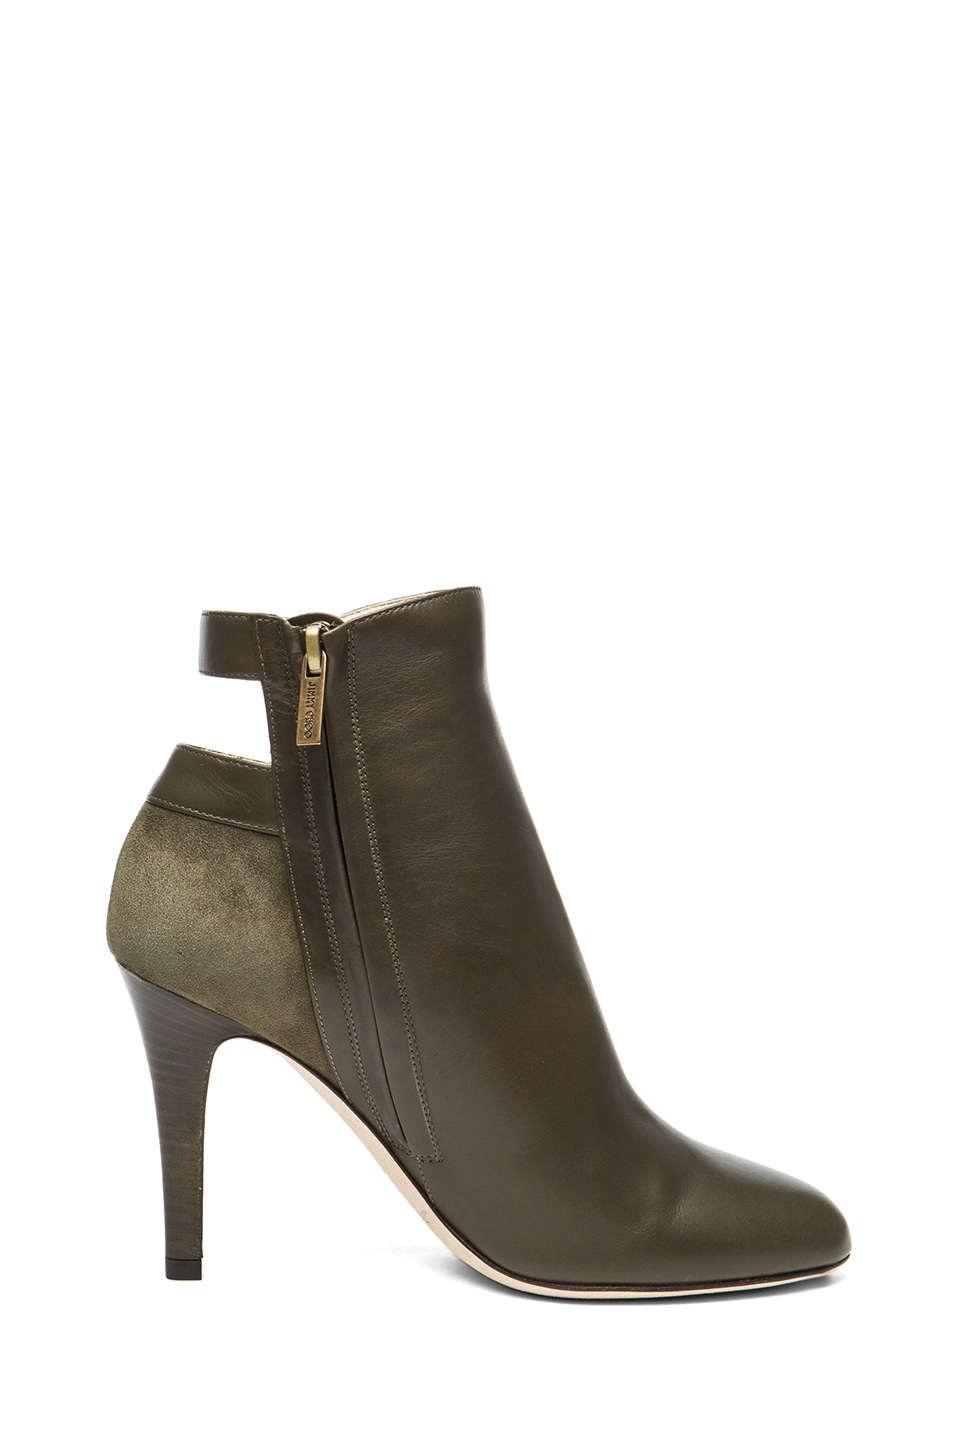 Image 5 of Jimmy Choo Troop Leather Booties in Military